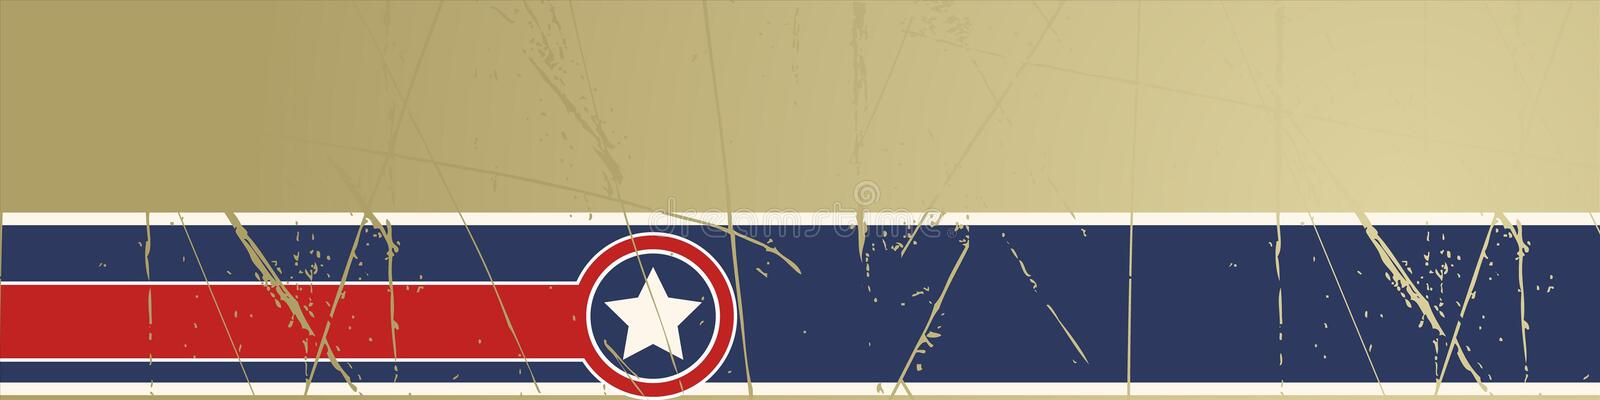 Download Grunge Stars And Stripes Background Royalty Free Stock Photography - Image: 15448547